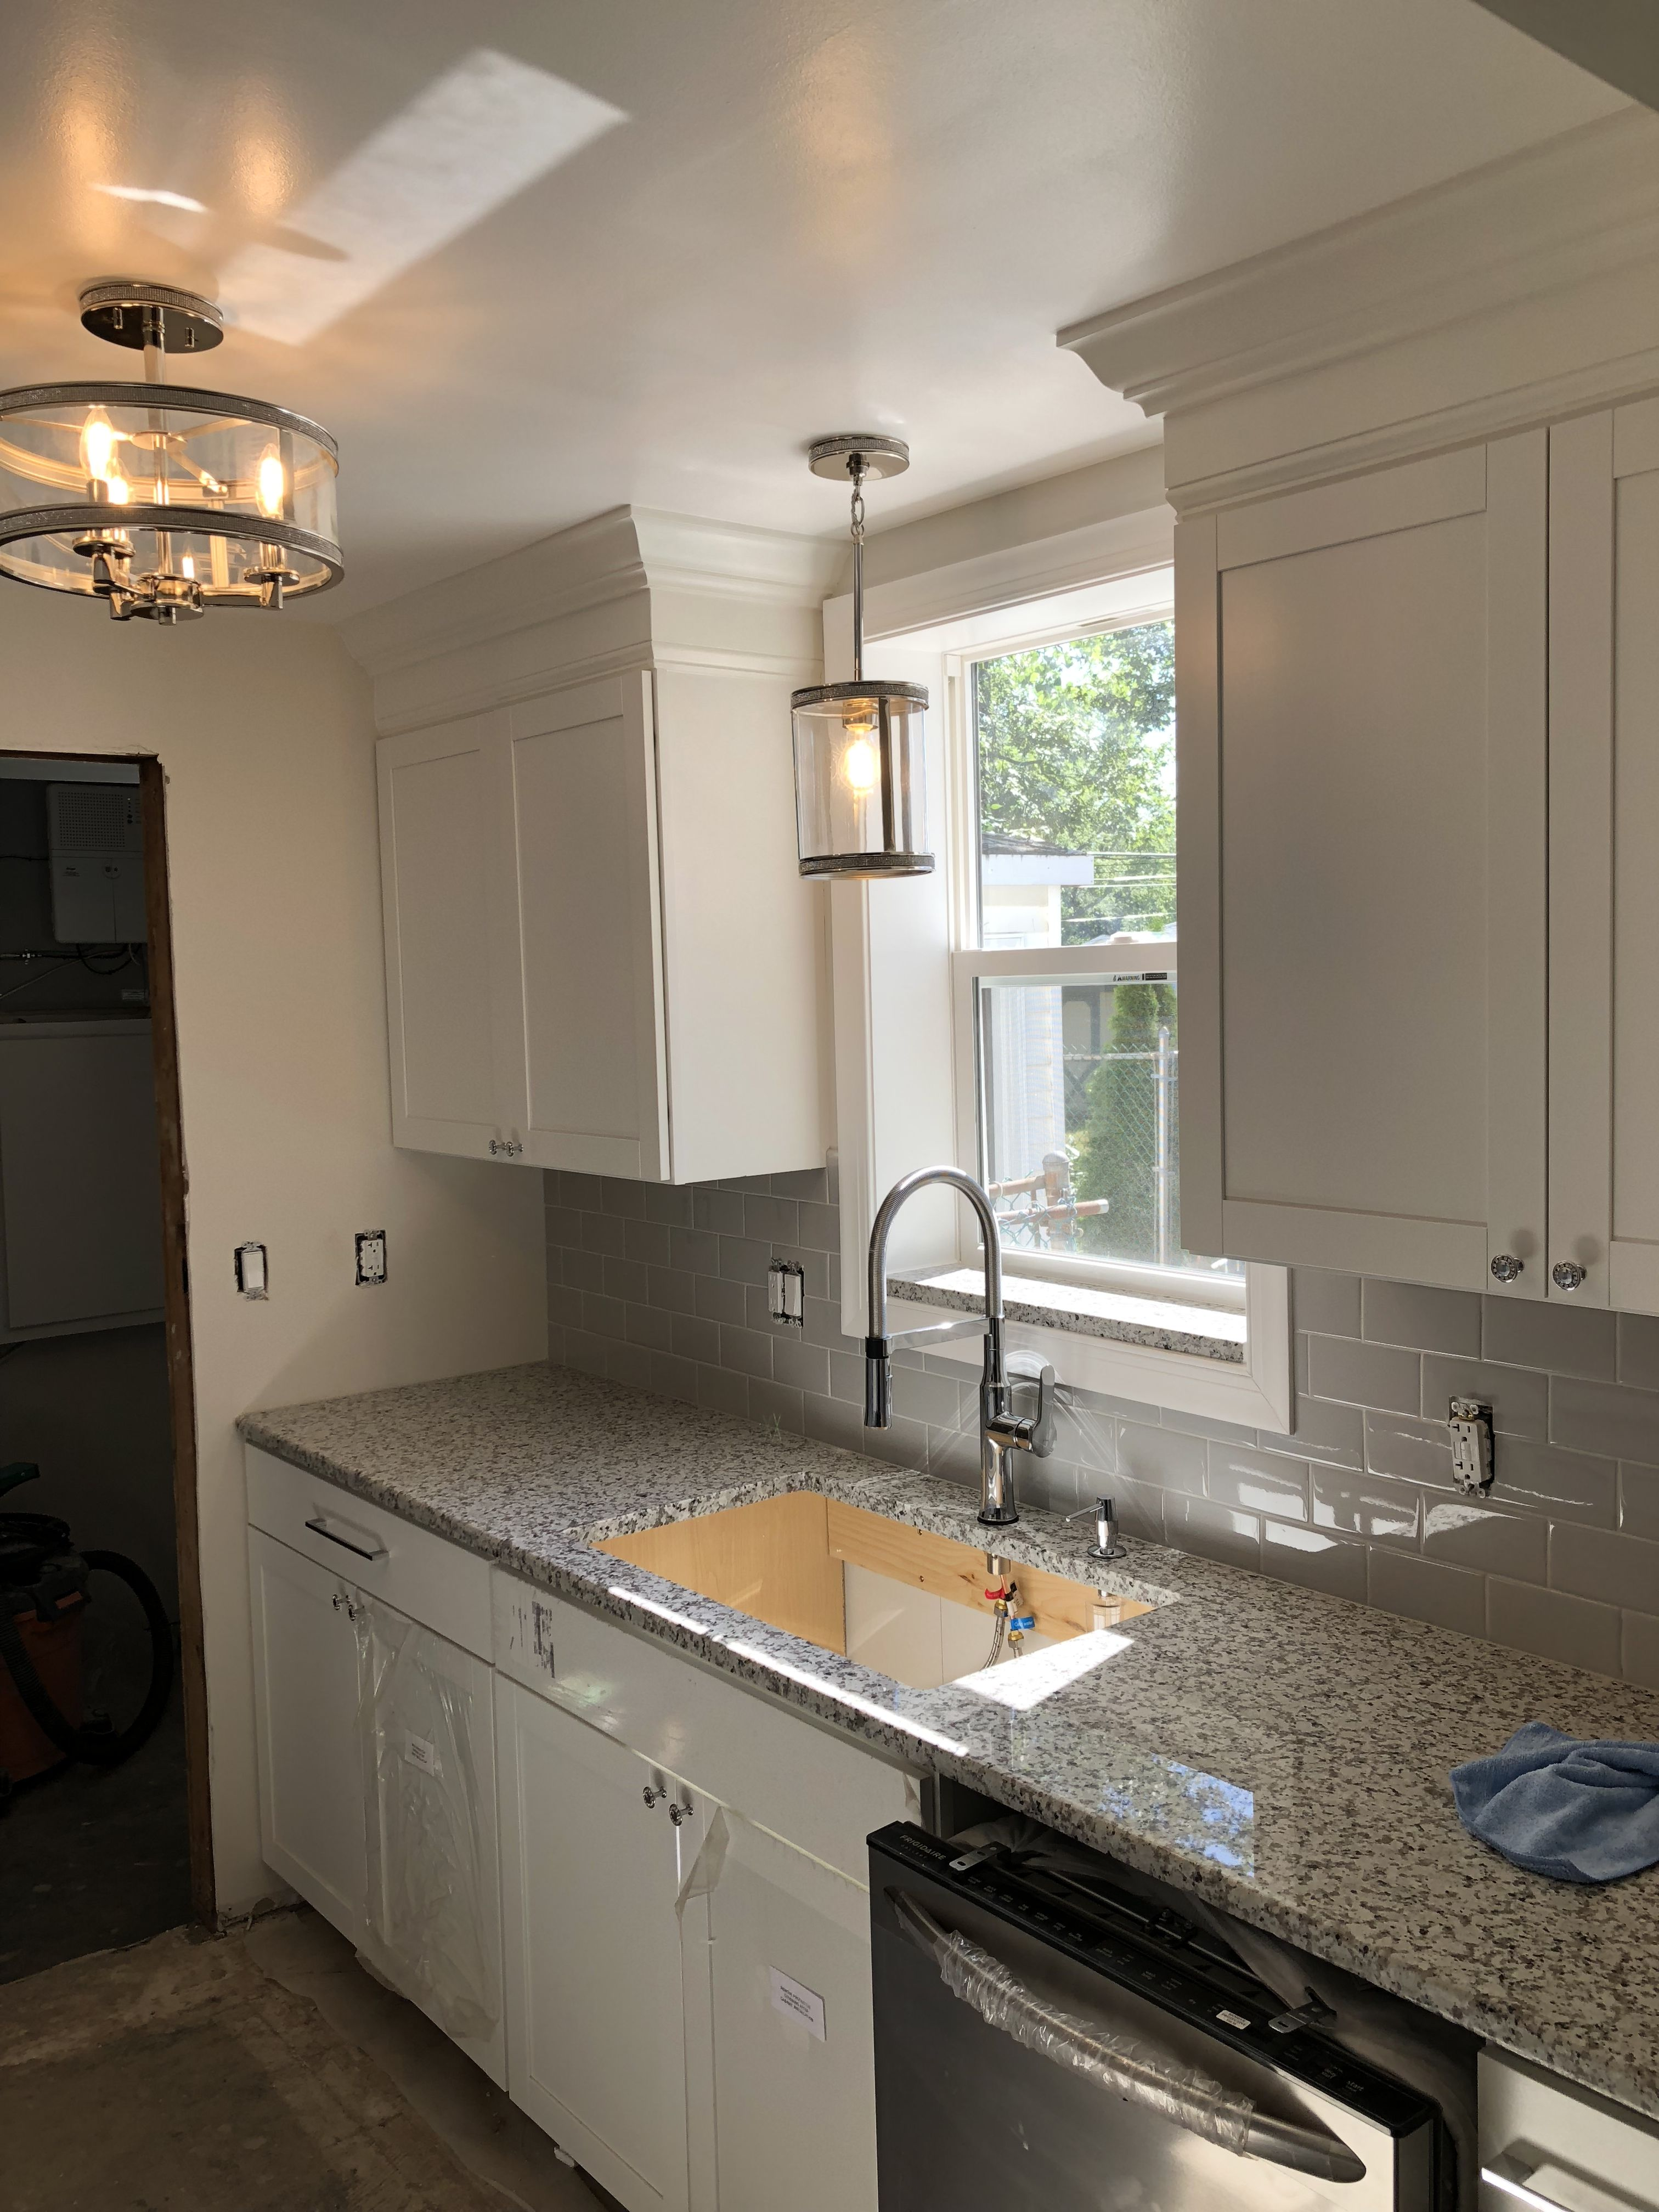 Lowe S Arcadia Shaker Kitchen Cabinets With Custom Crown Molding Kitchen Cabinet Crown Molding Lowes Kitchen Cabinets Stock Kitchen Cabinets